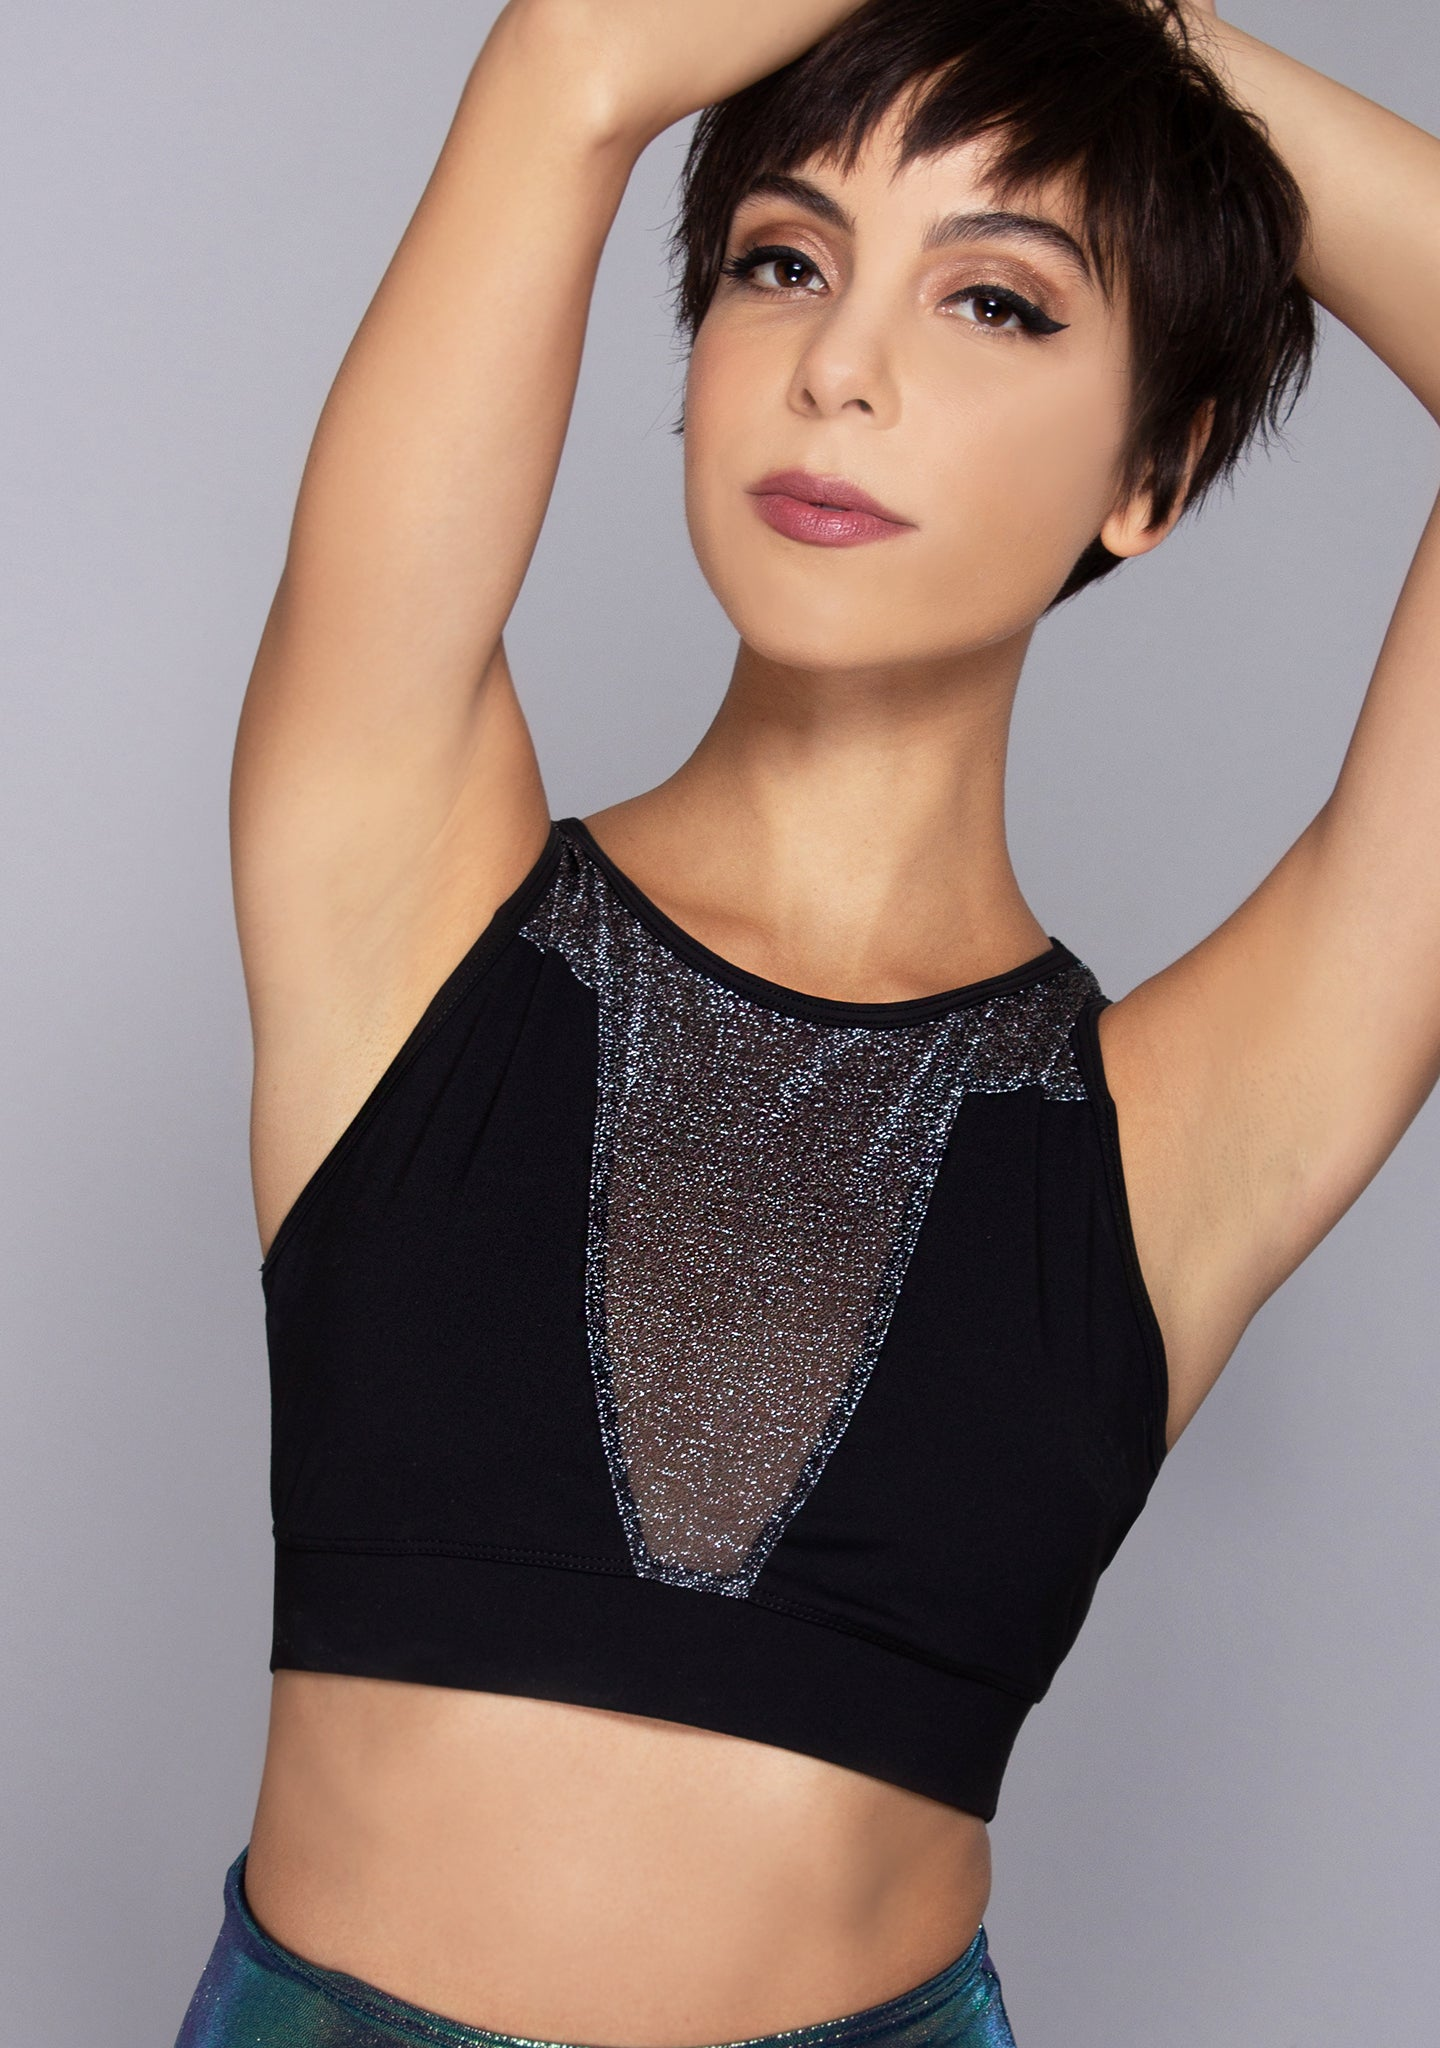 Dip It Low Sparkling Mesh Bra Top